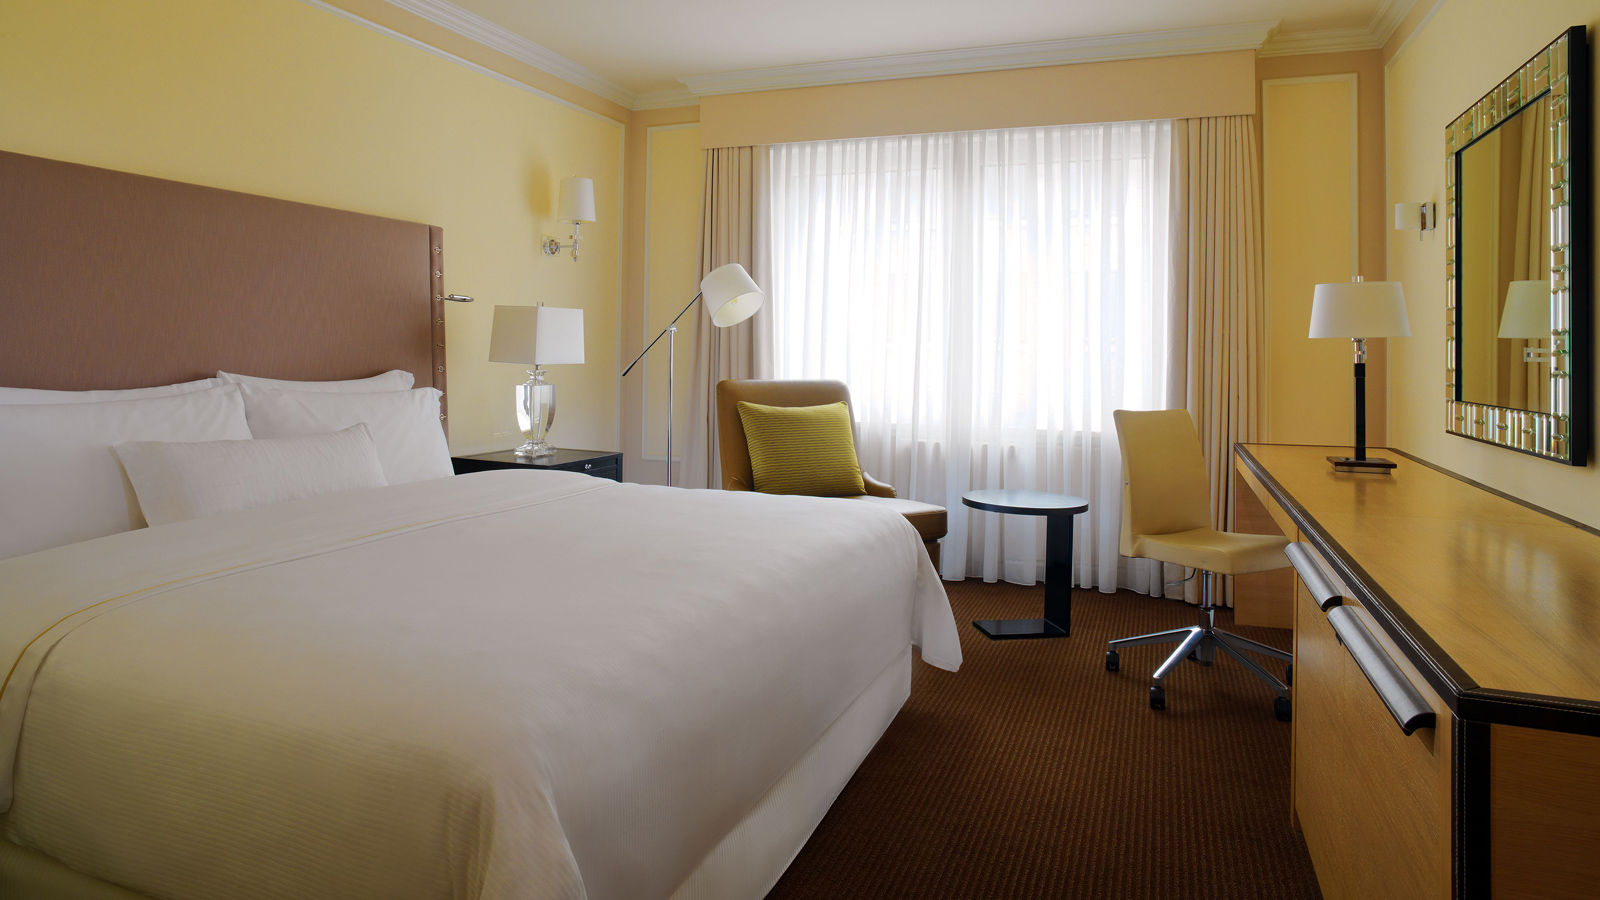 Deluxe room at The Westin Grand hotel Berlin